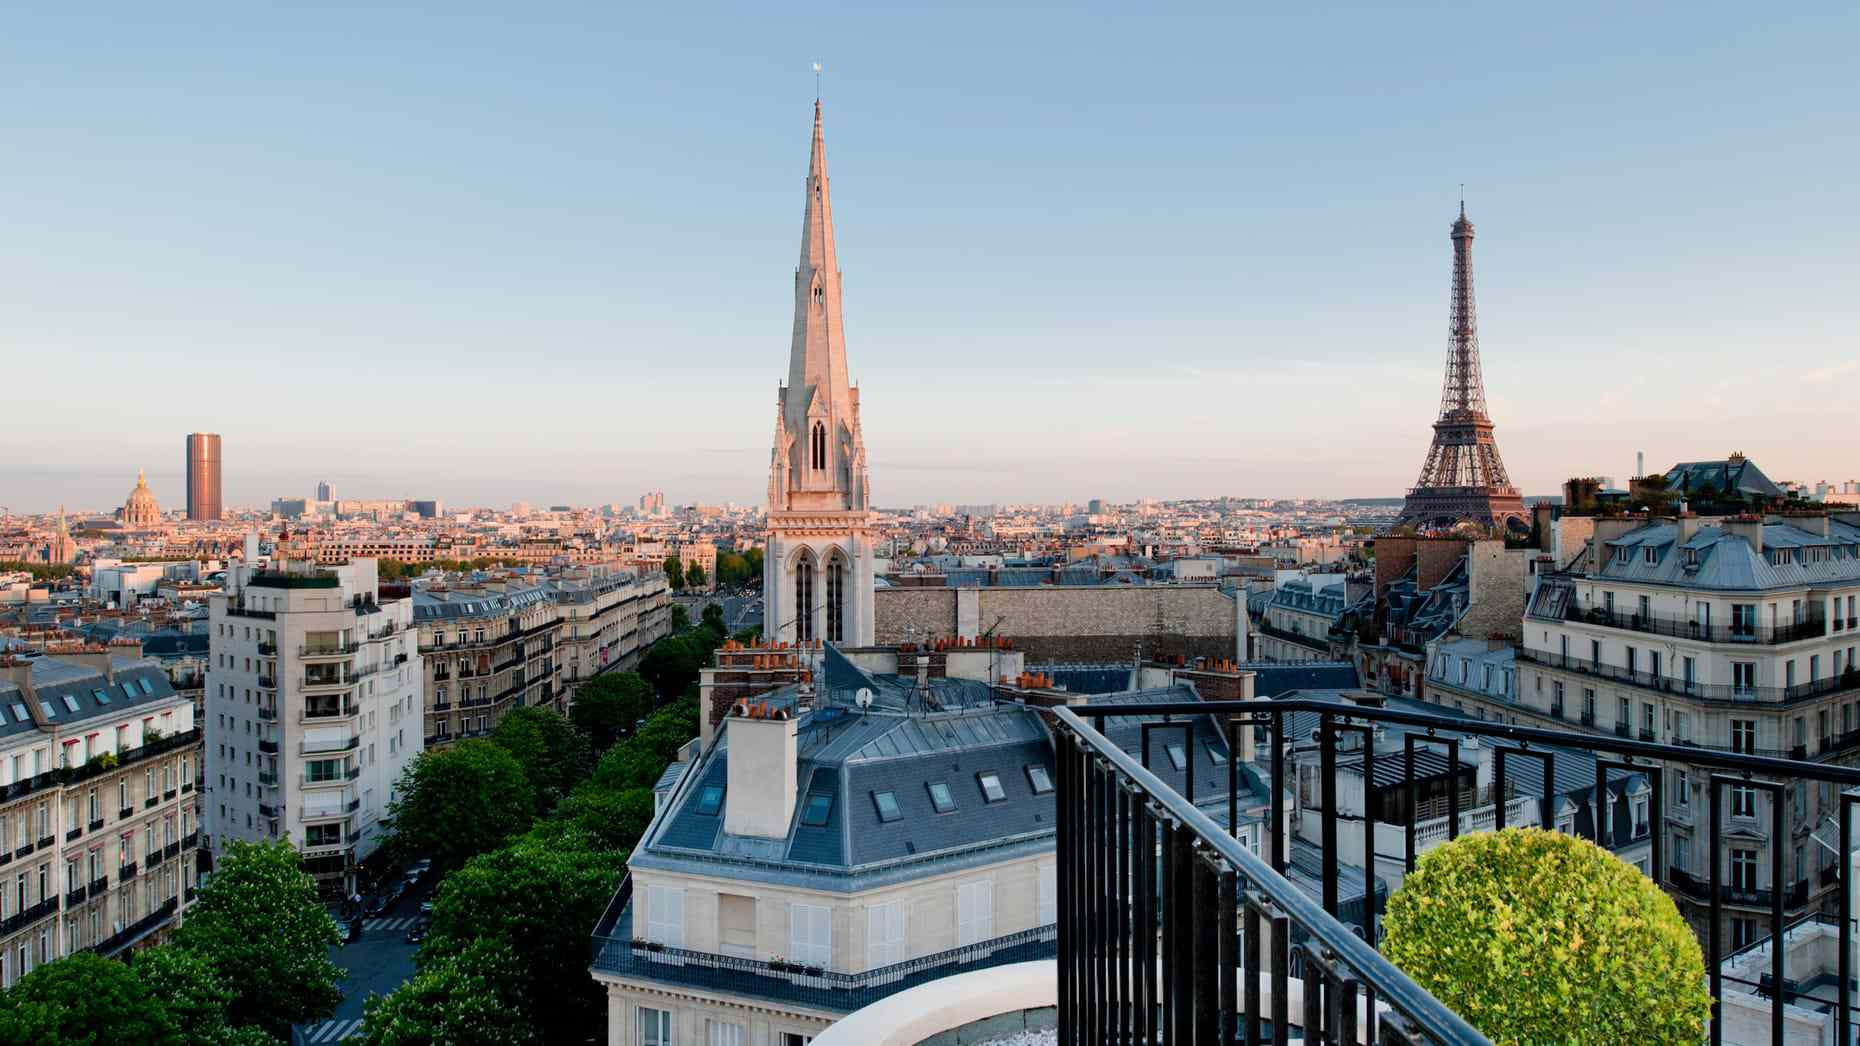 View from hotel of Eiffel Tower and surrounding cityscape